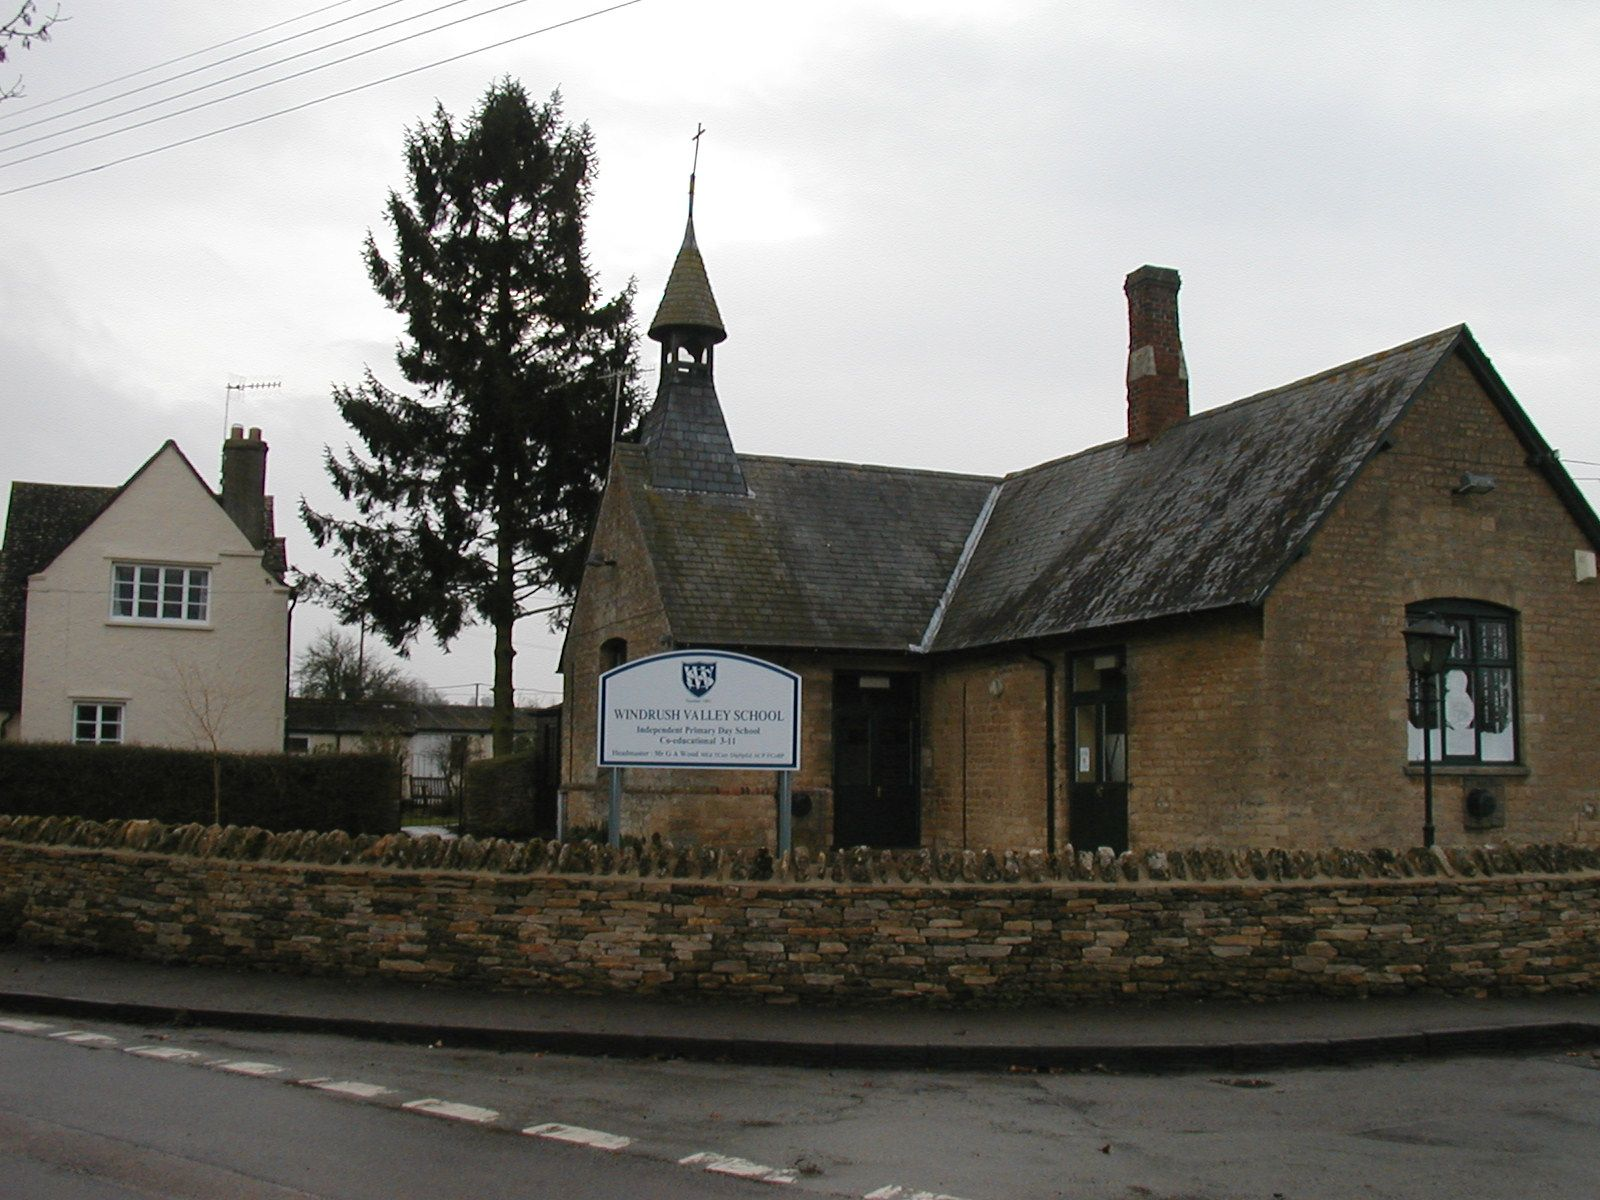 Windrush Valley School